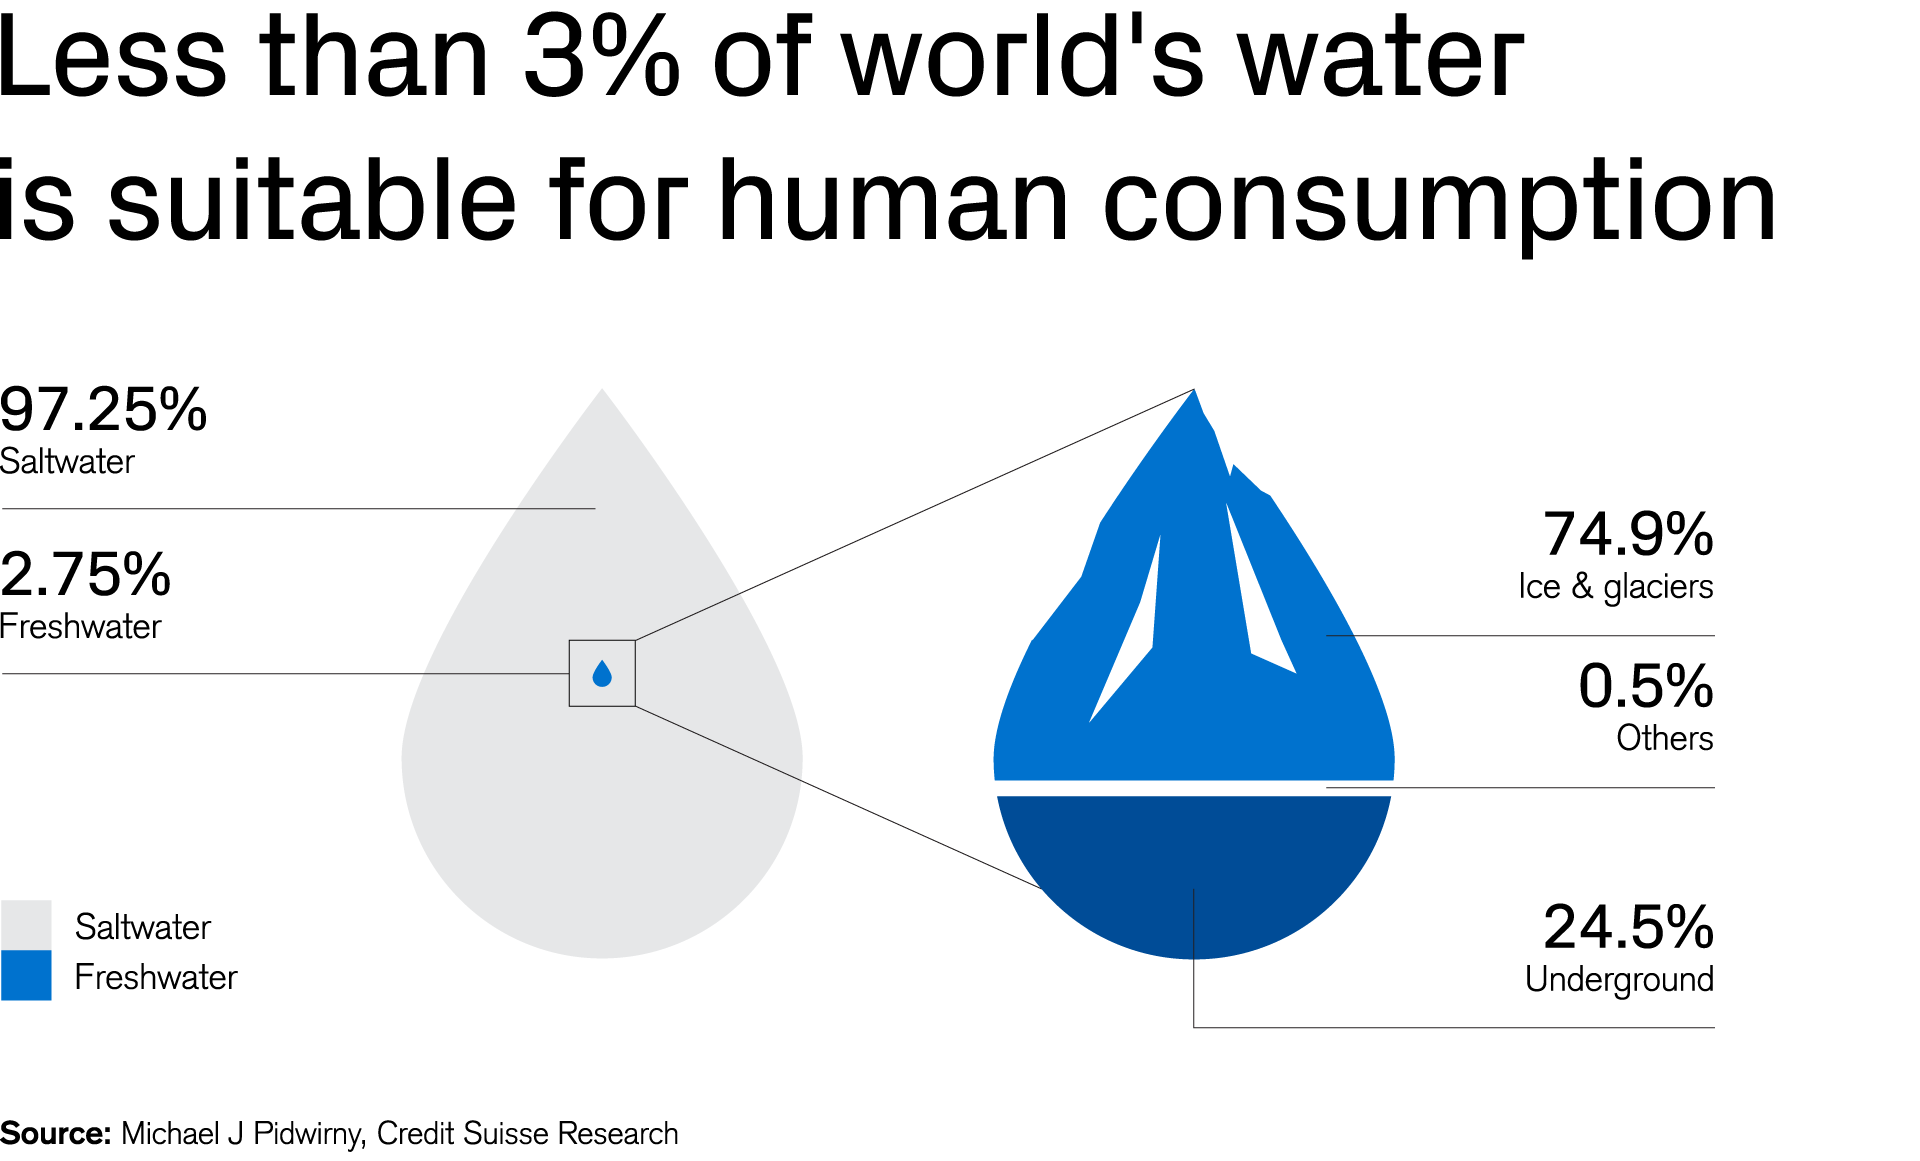 Less  than 3% of world's water is suitable for human consumption